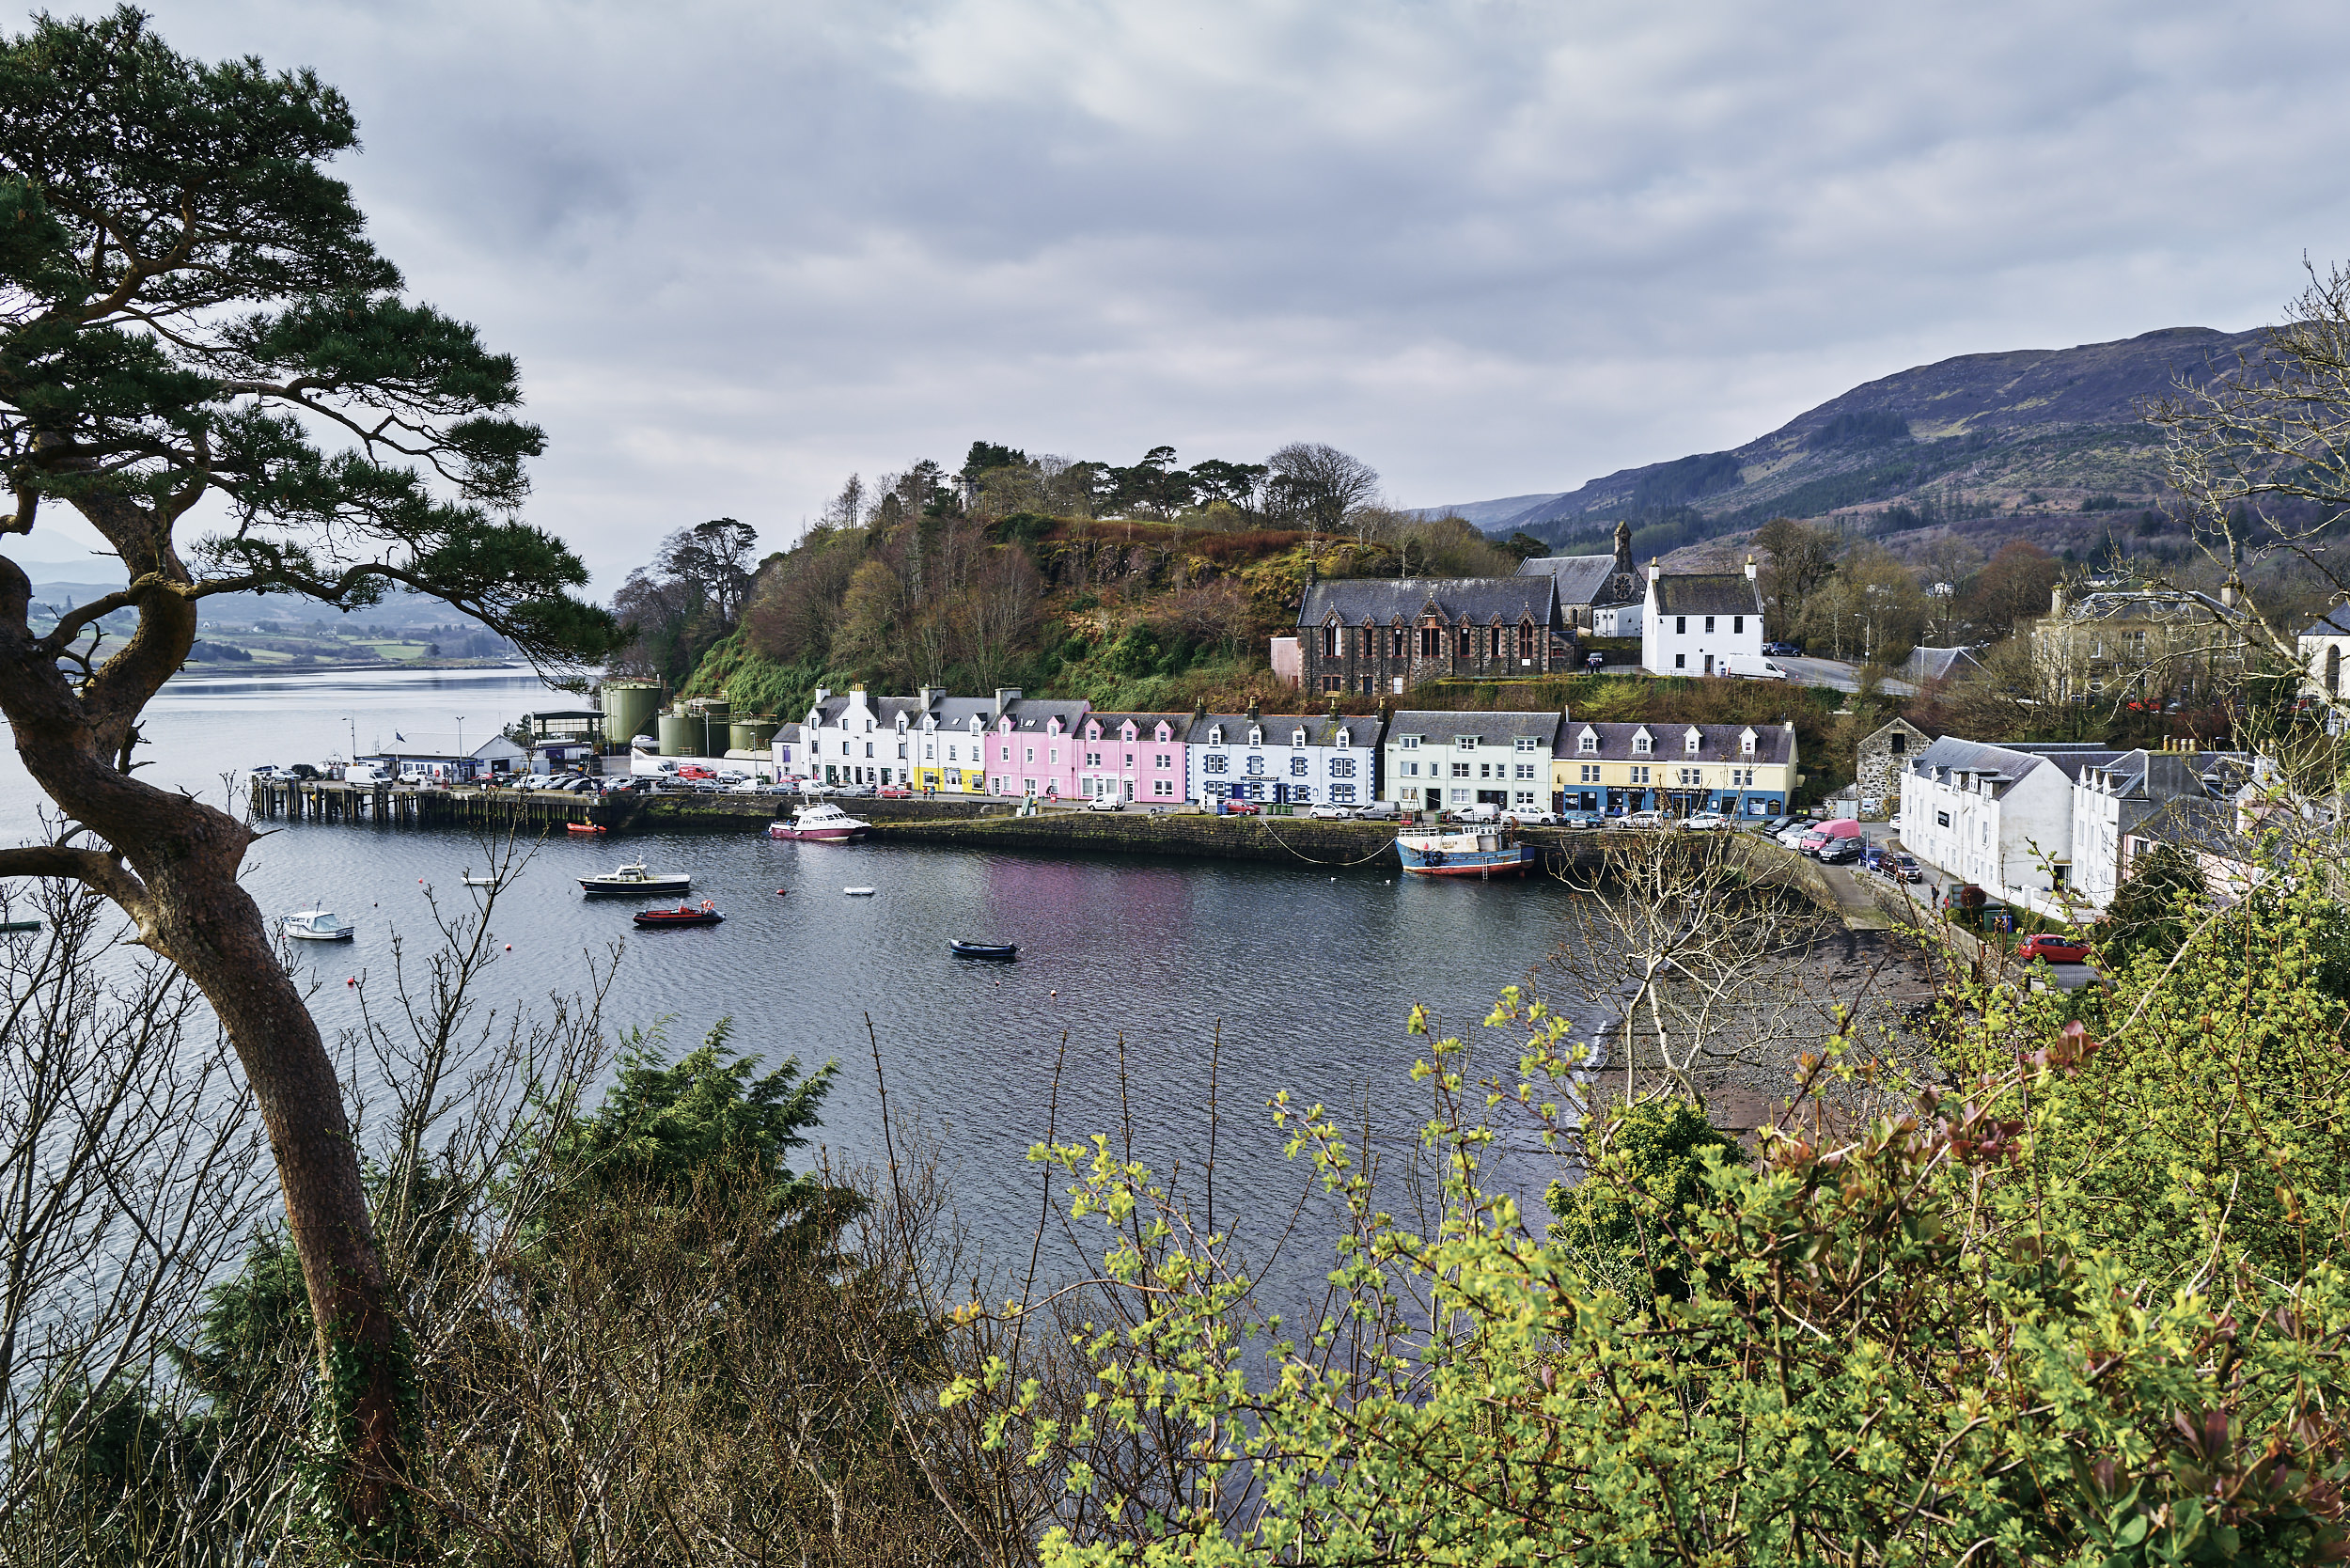 Quickly snapped this on our way out of Portree. It's a shame we didn't get to explore the town we stayed in for three days. Ah well… There's always next time…